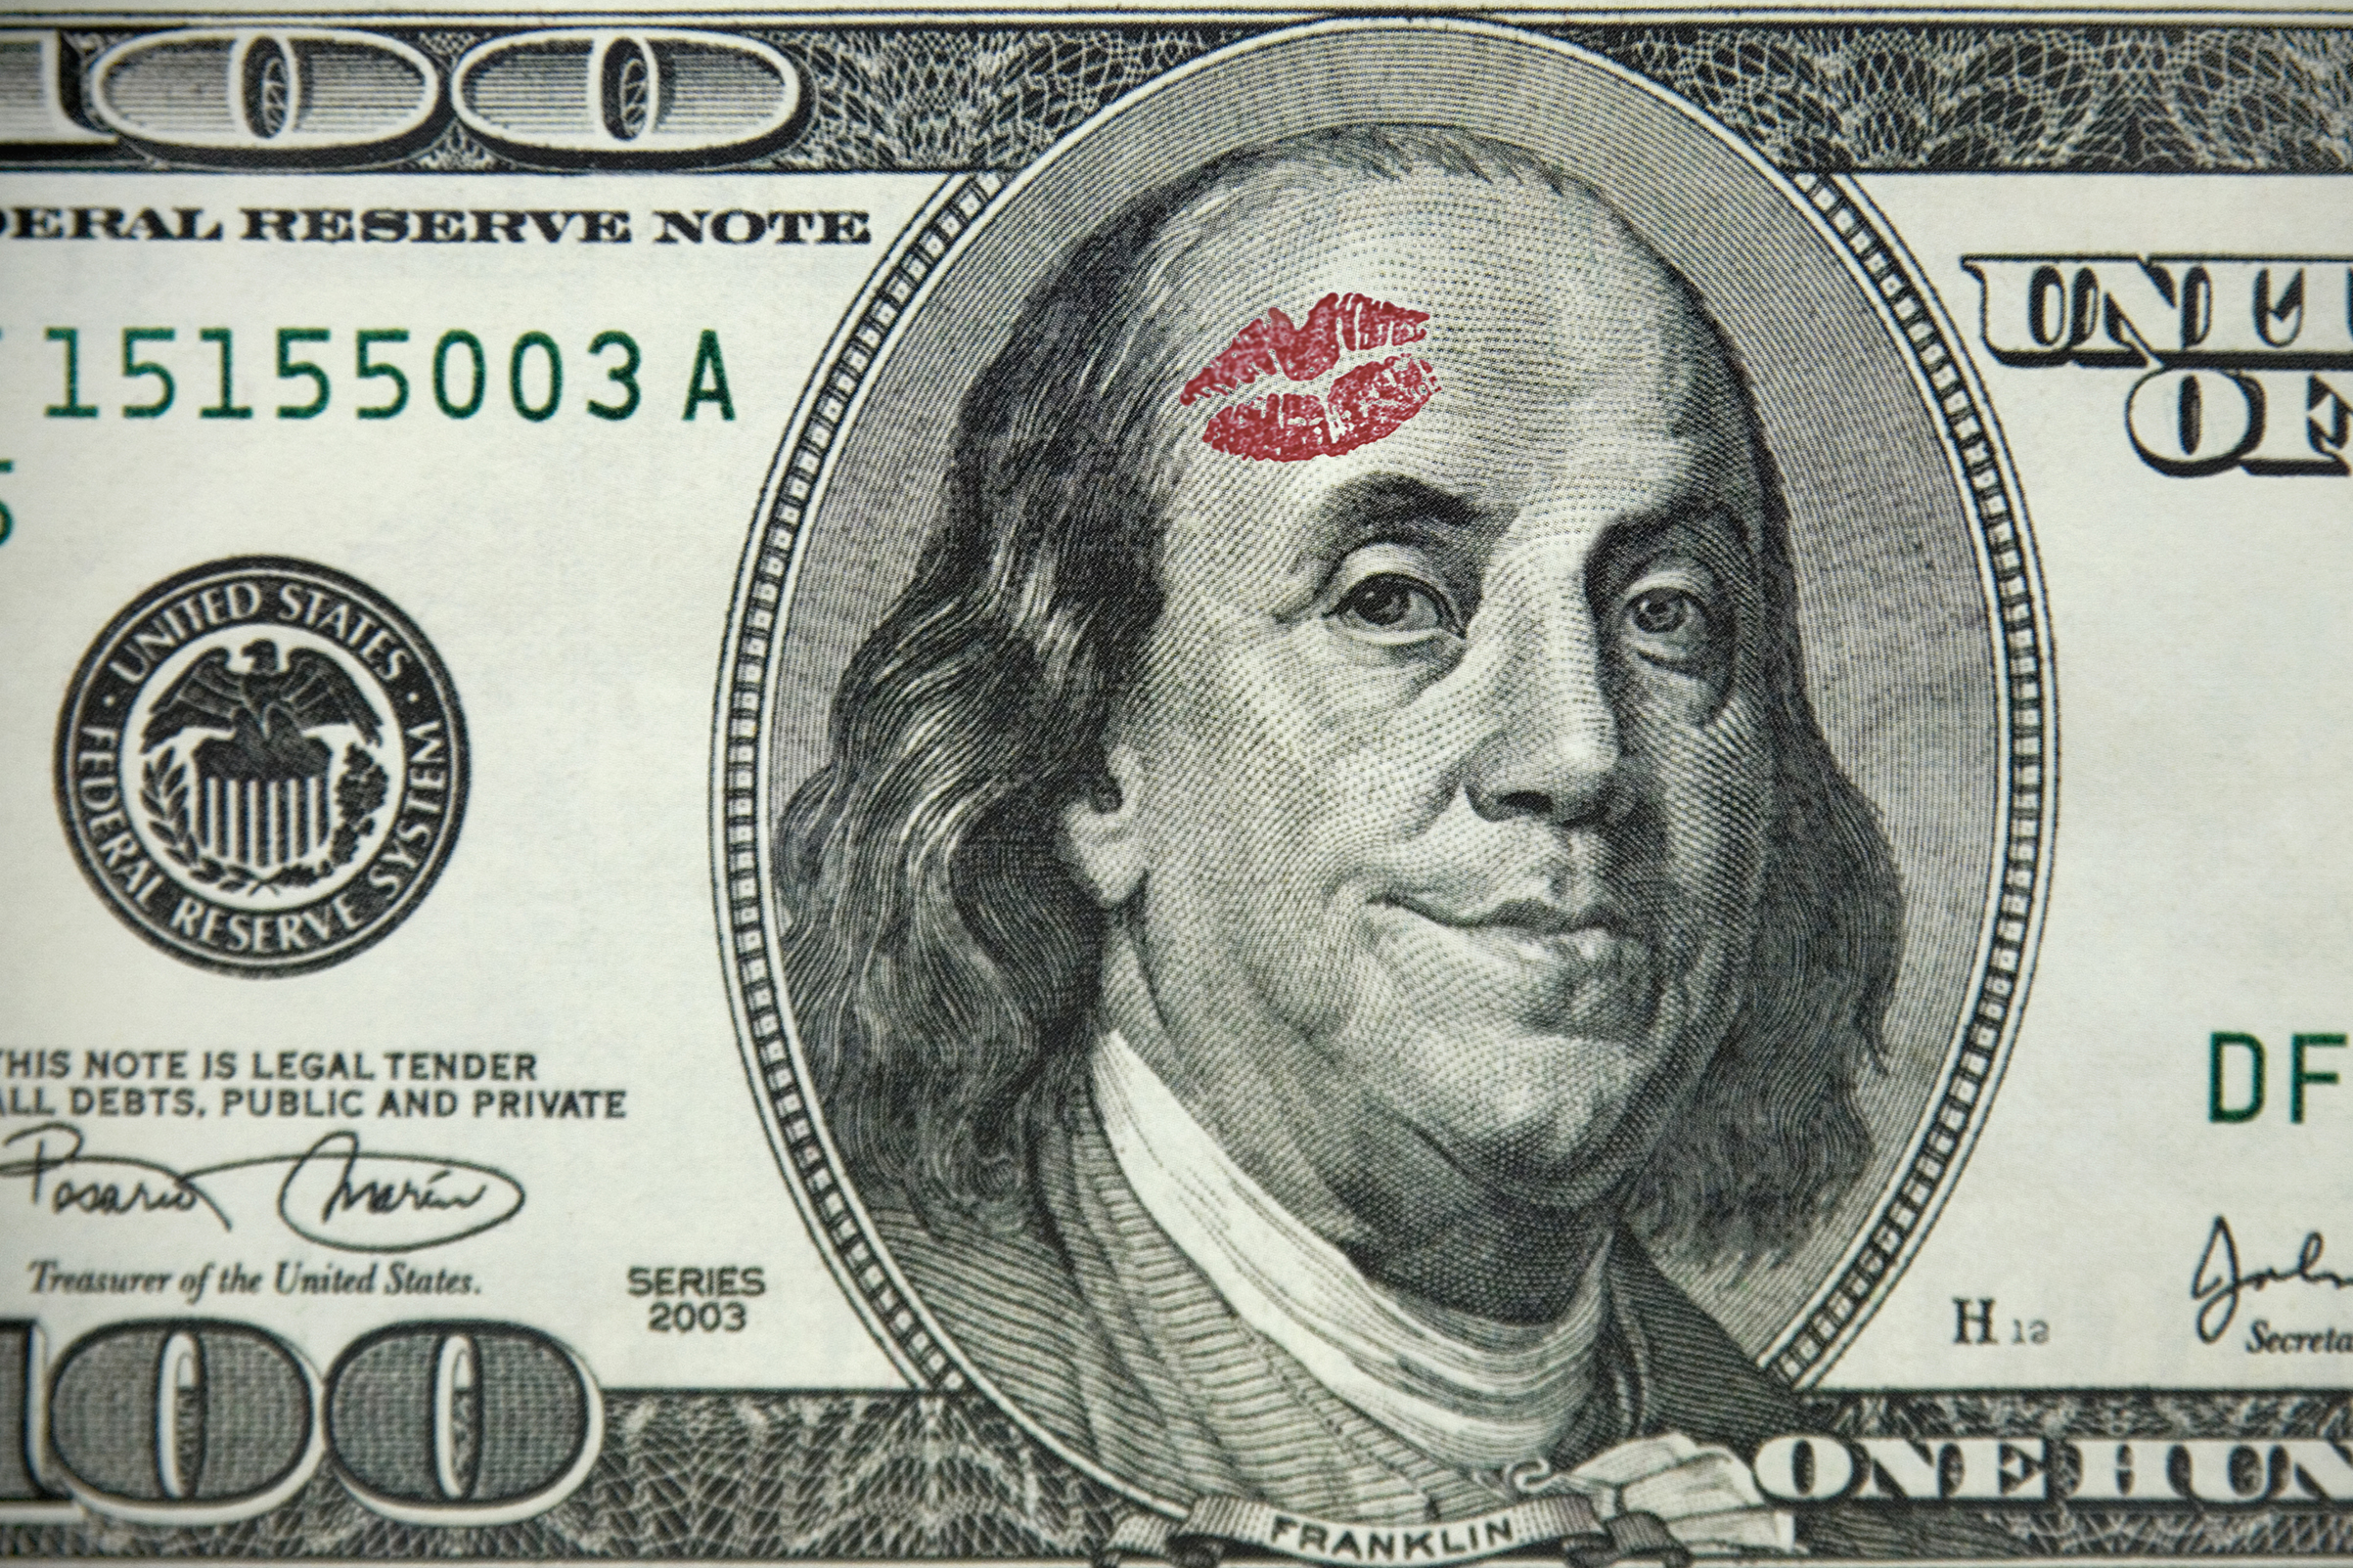 Ben Franklin, on a hundred dollar bill, smiles, having recieved a kiss on the forehead